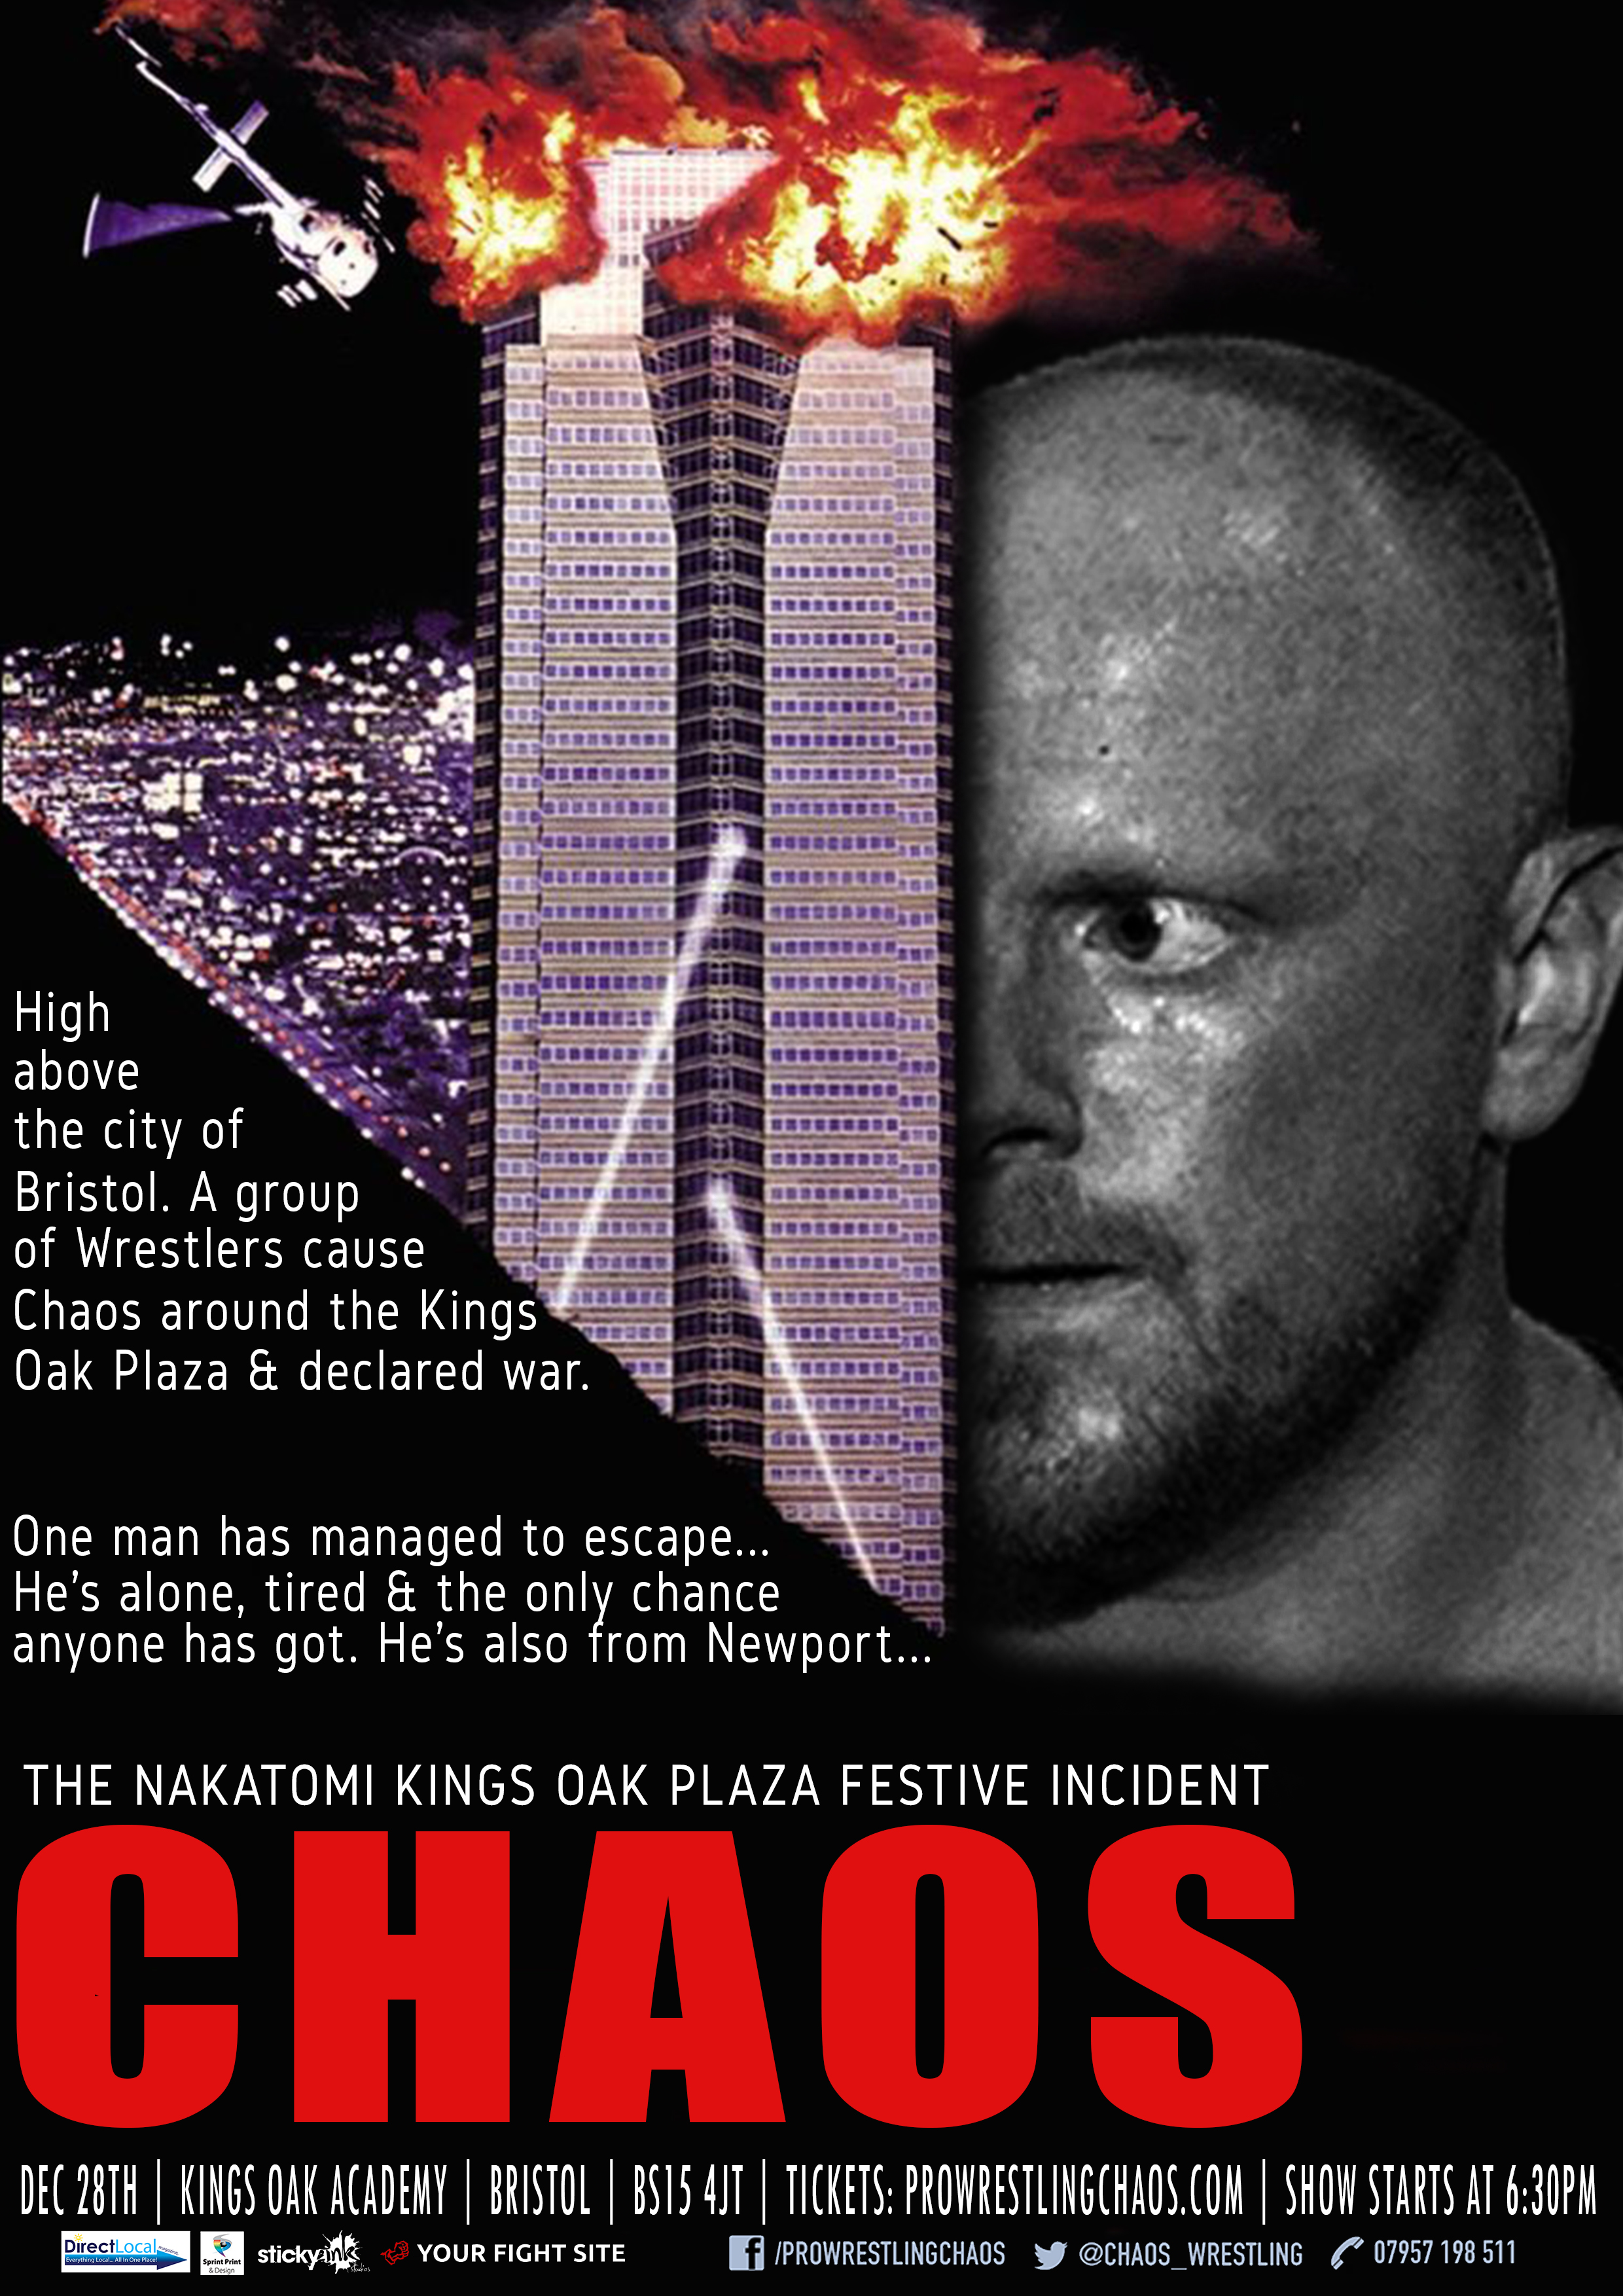 Pro Wrestling Chaos: The Nakatomi Kings Oak Plaza Festive Incident event description image